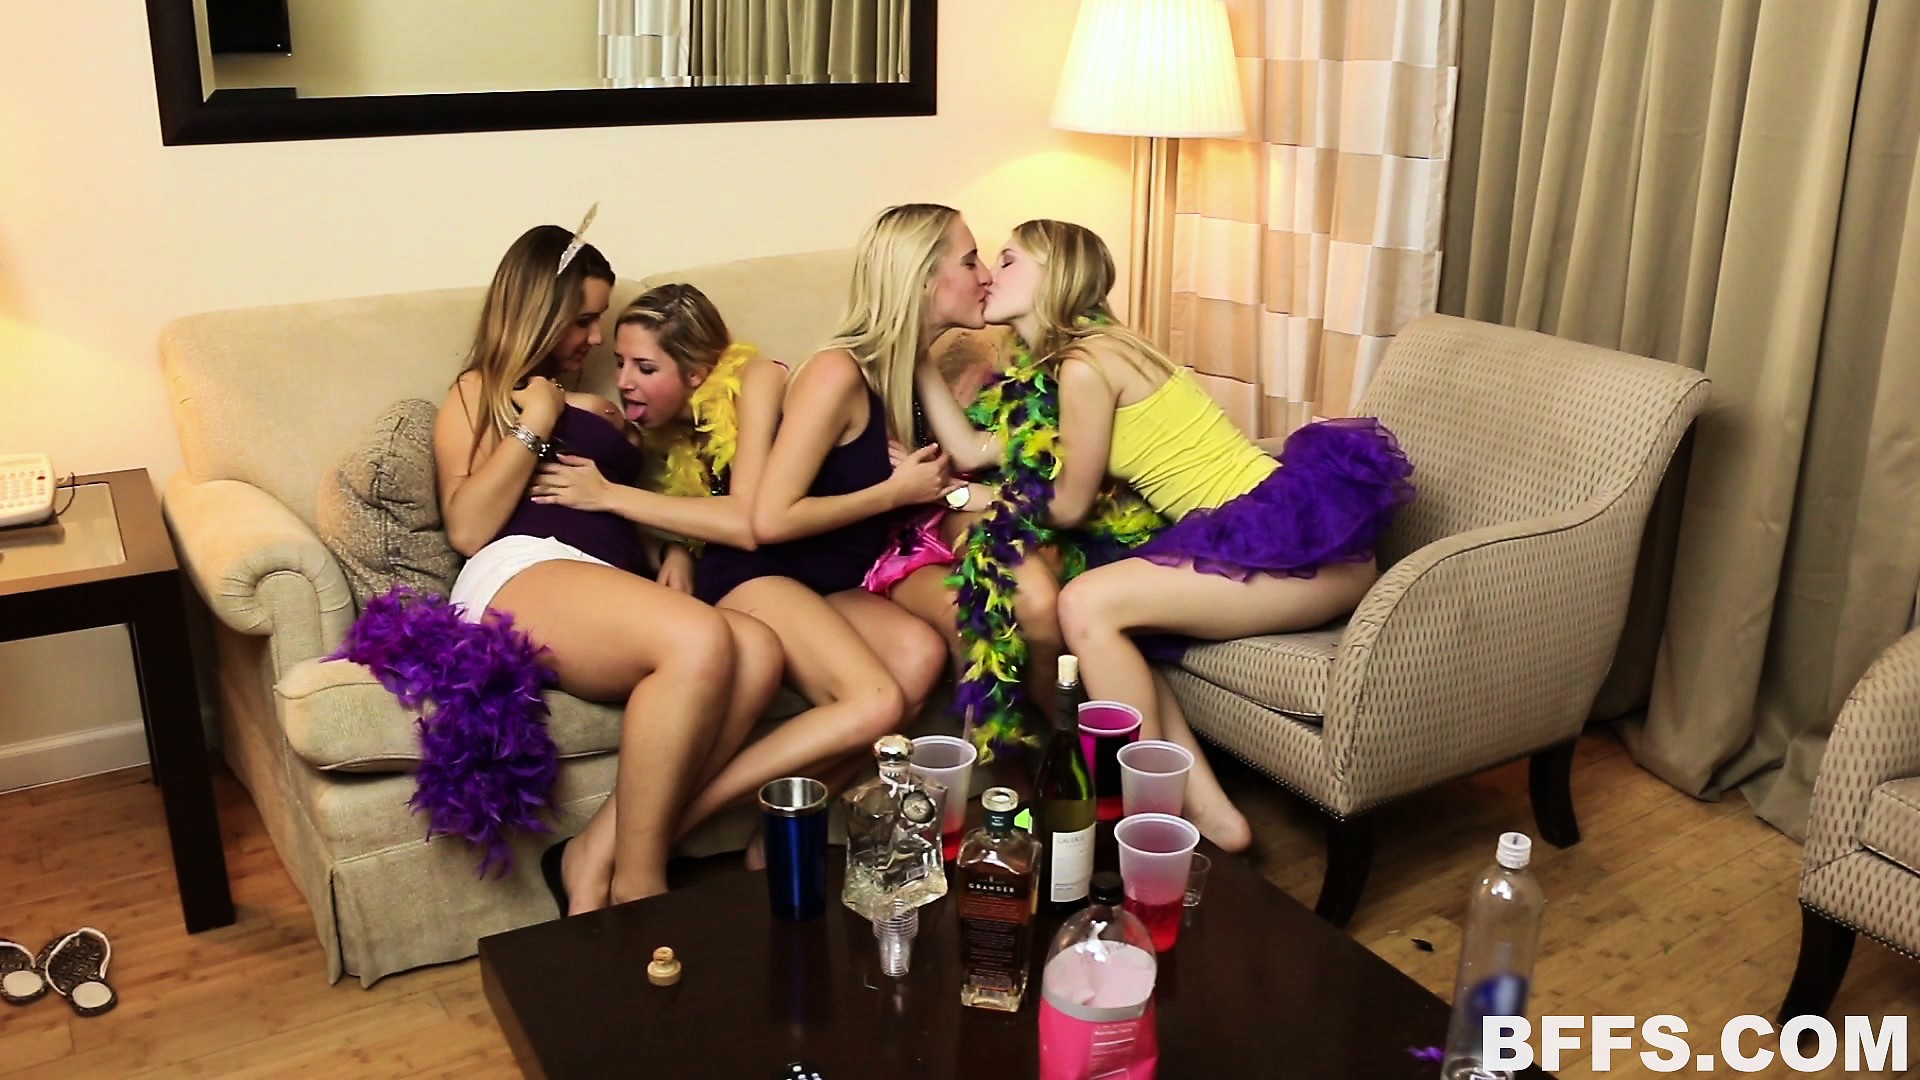 Sexy party girl videos the